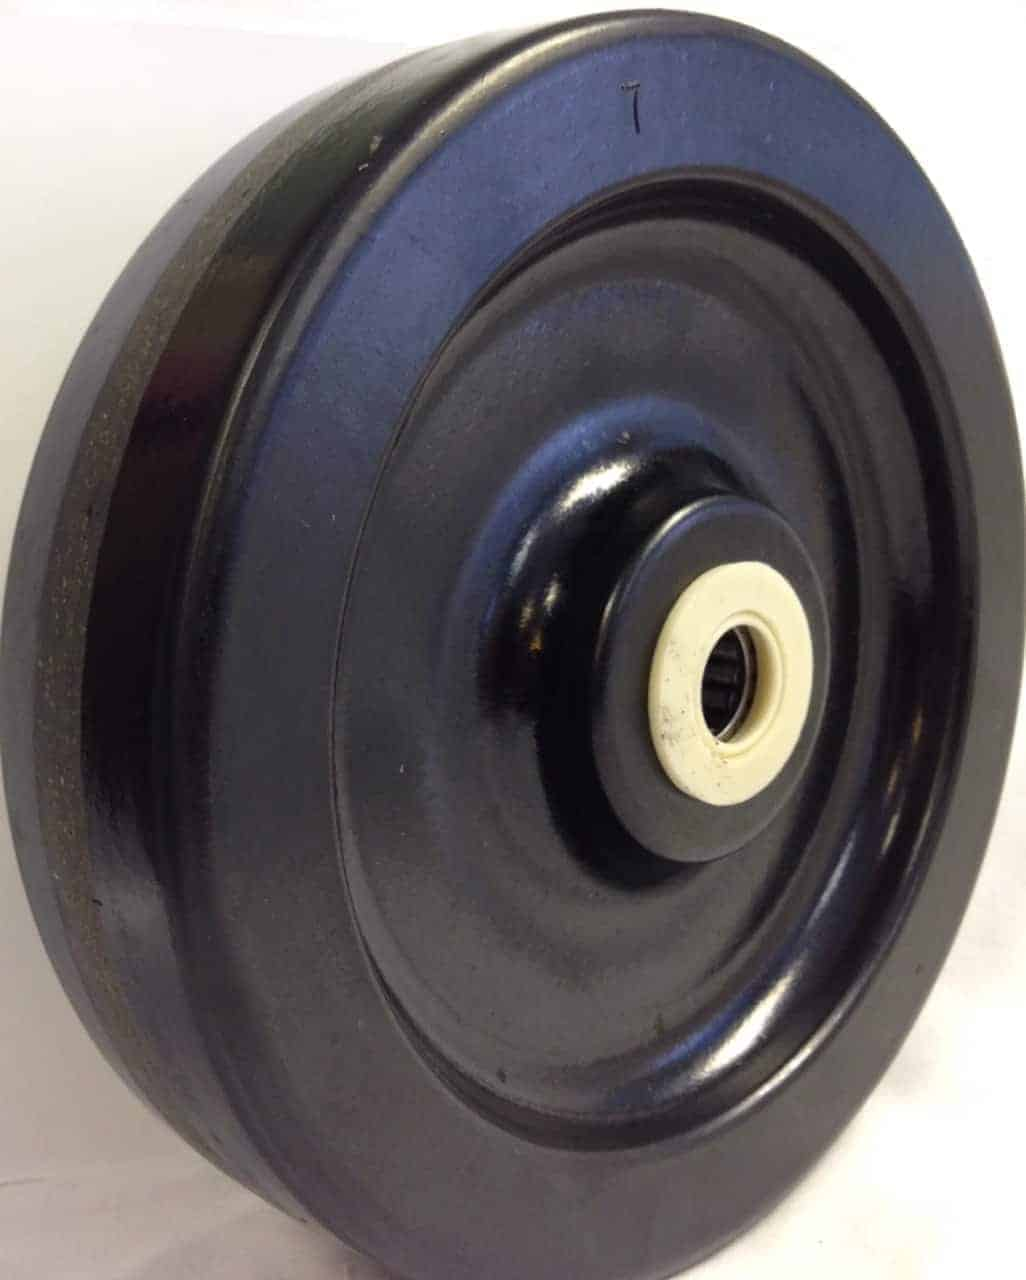 8″ Phenolic Wheel With 2-3/4″ Hub 1-1/4″ Roller Bearing 2000 Lbs Capacity